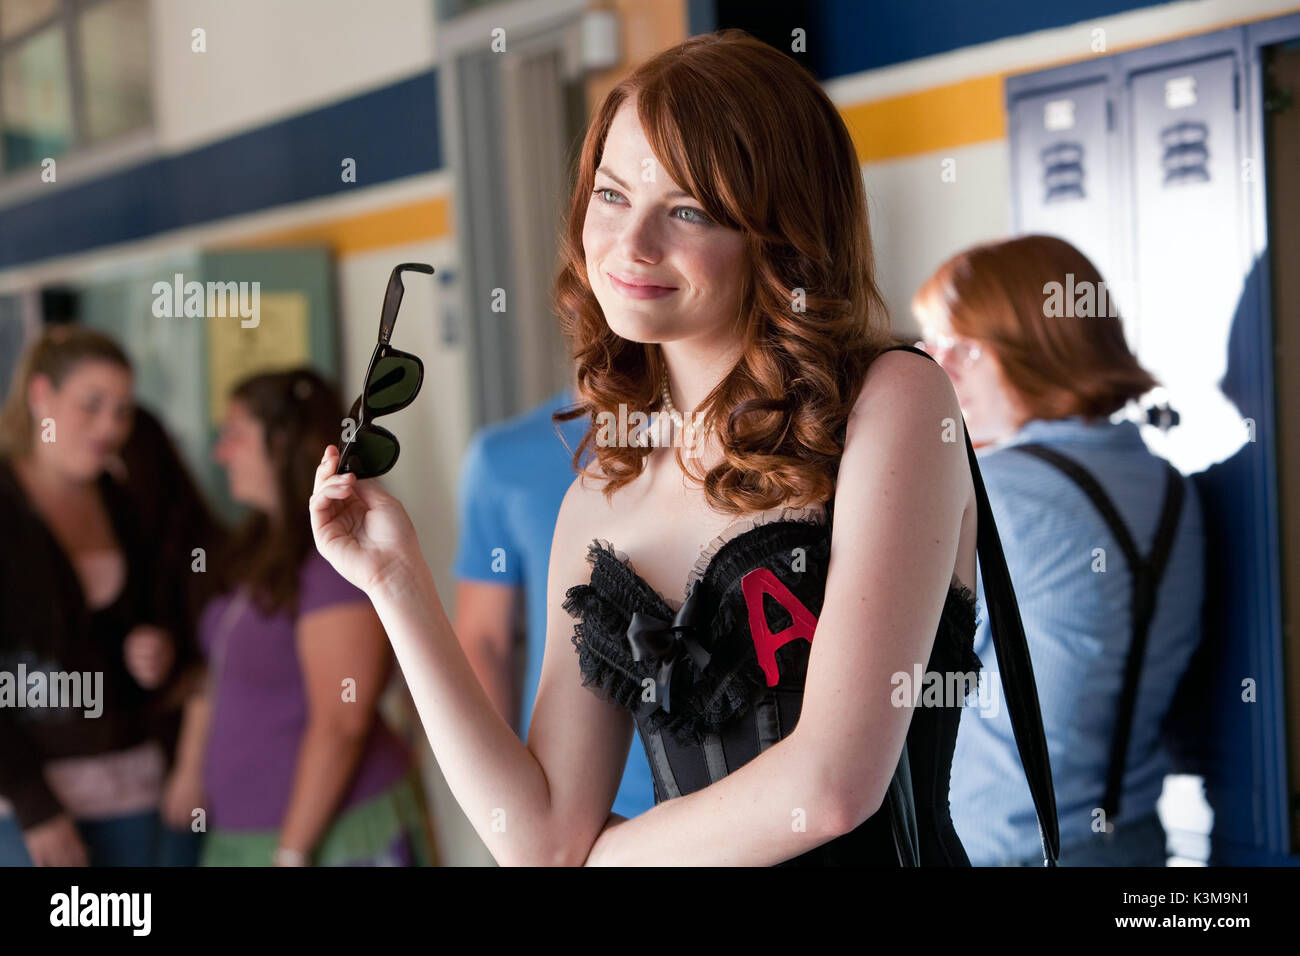 EASY A EMMA STONE     Date: 2010 - Stock Image